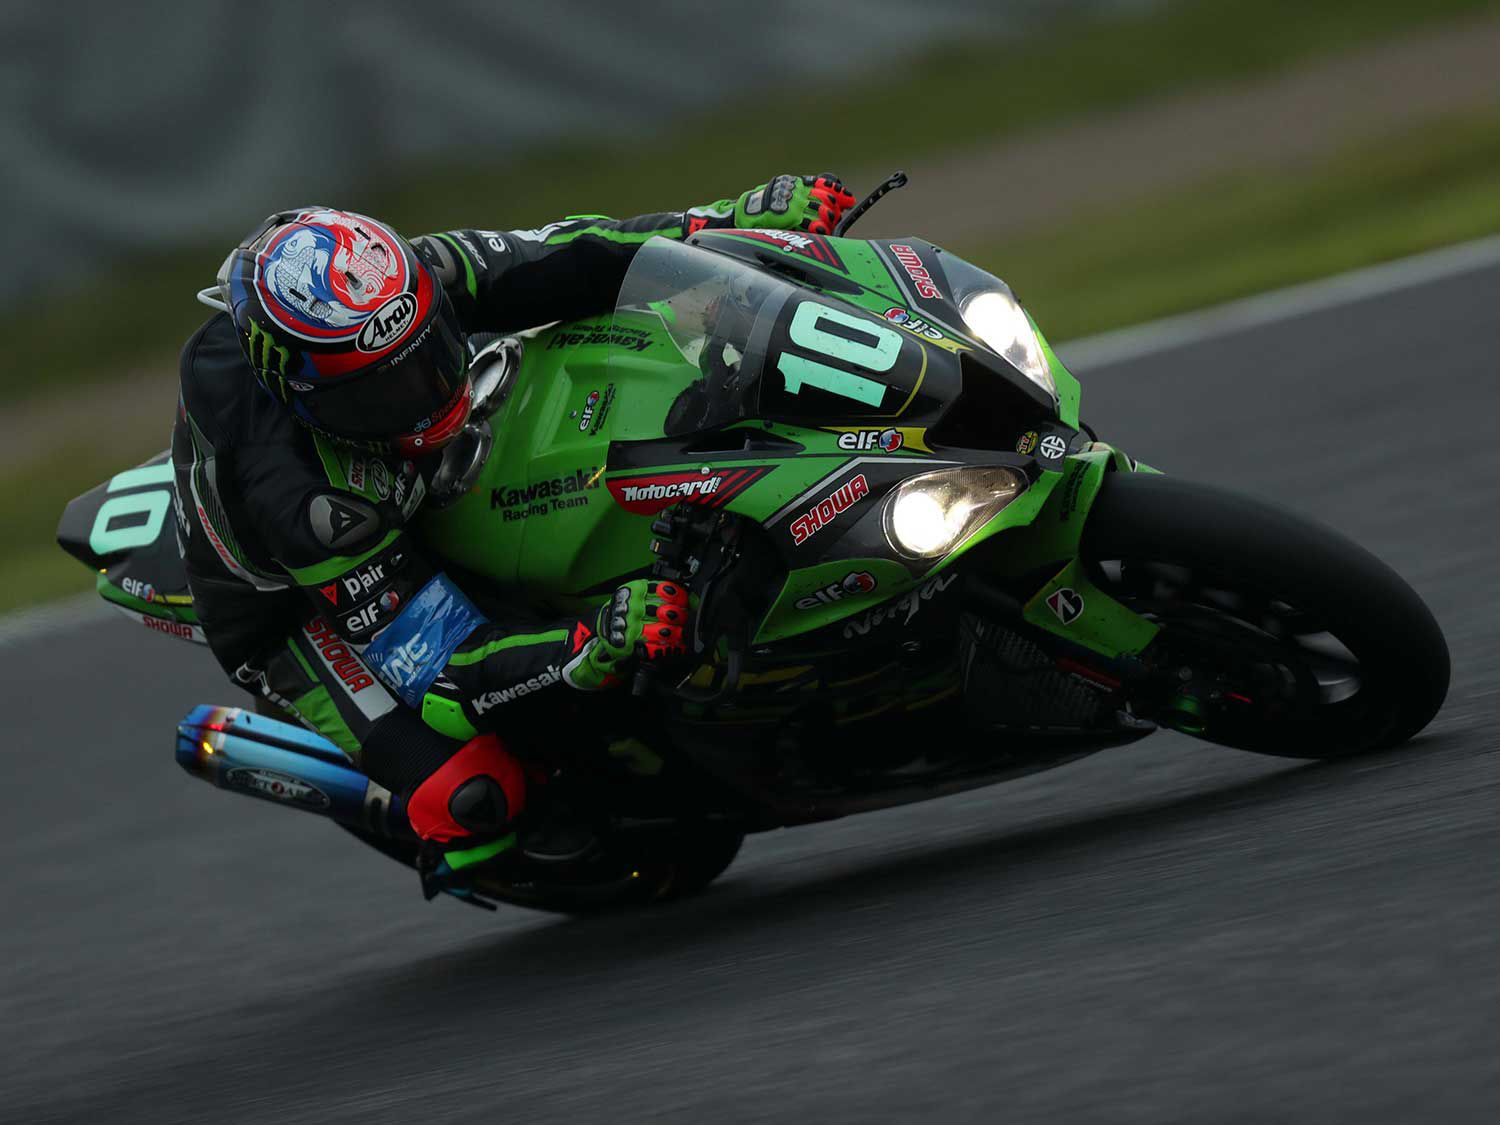 Jonathan Rea was bringing the win home when oil on the track ended his race. The red flag and revised results gave his team the Suzuka 8 Hours win.